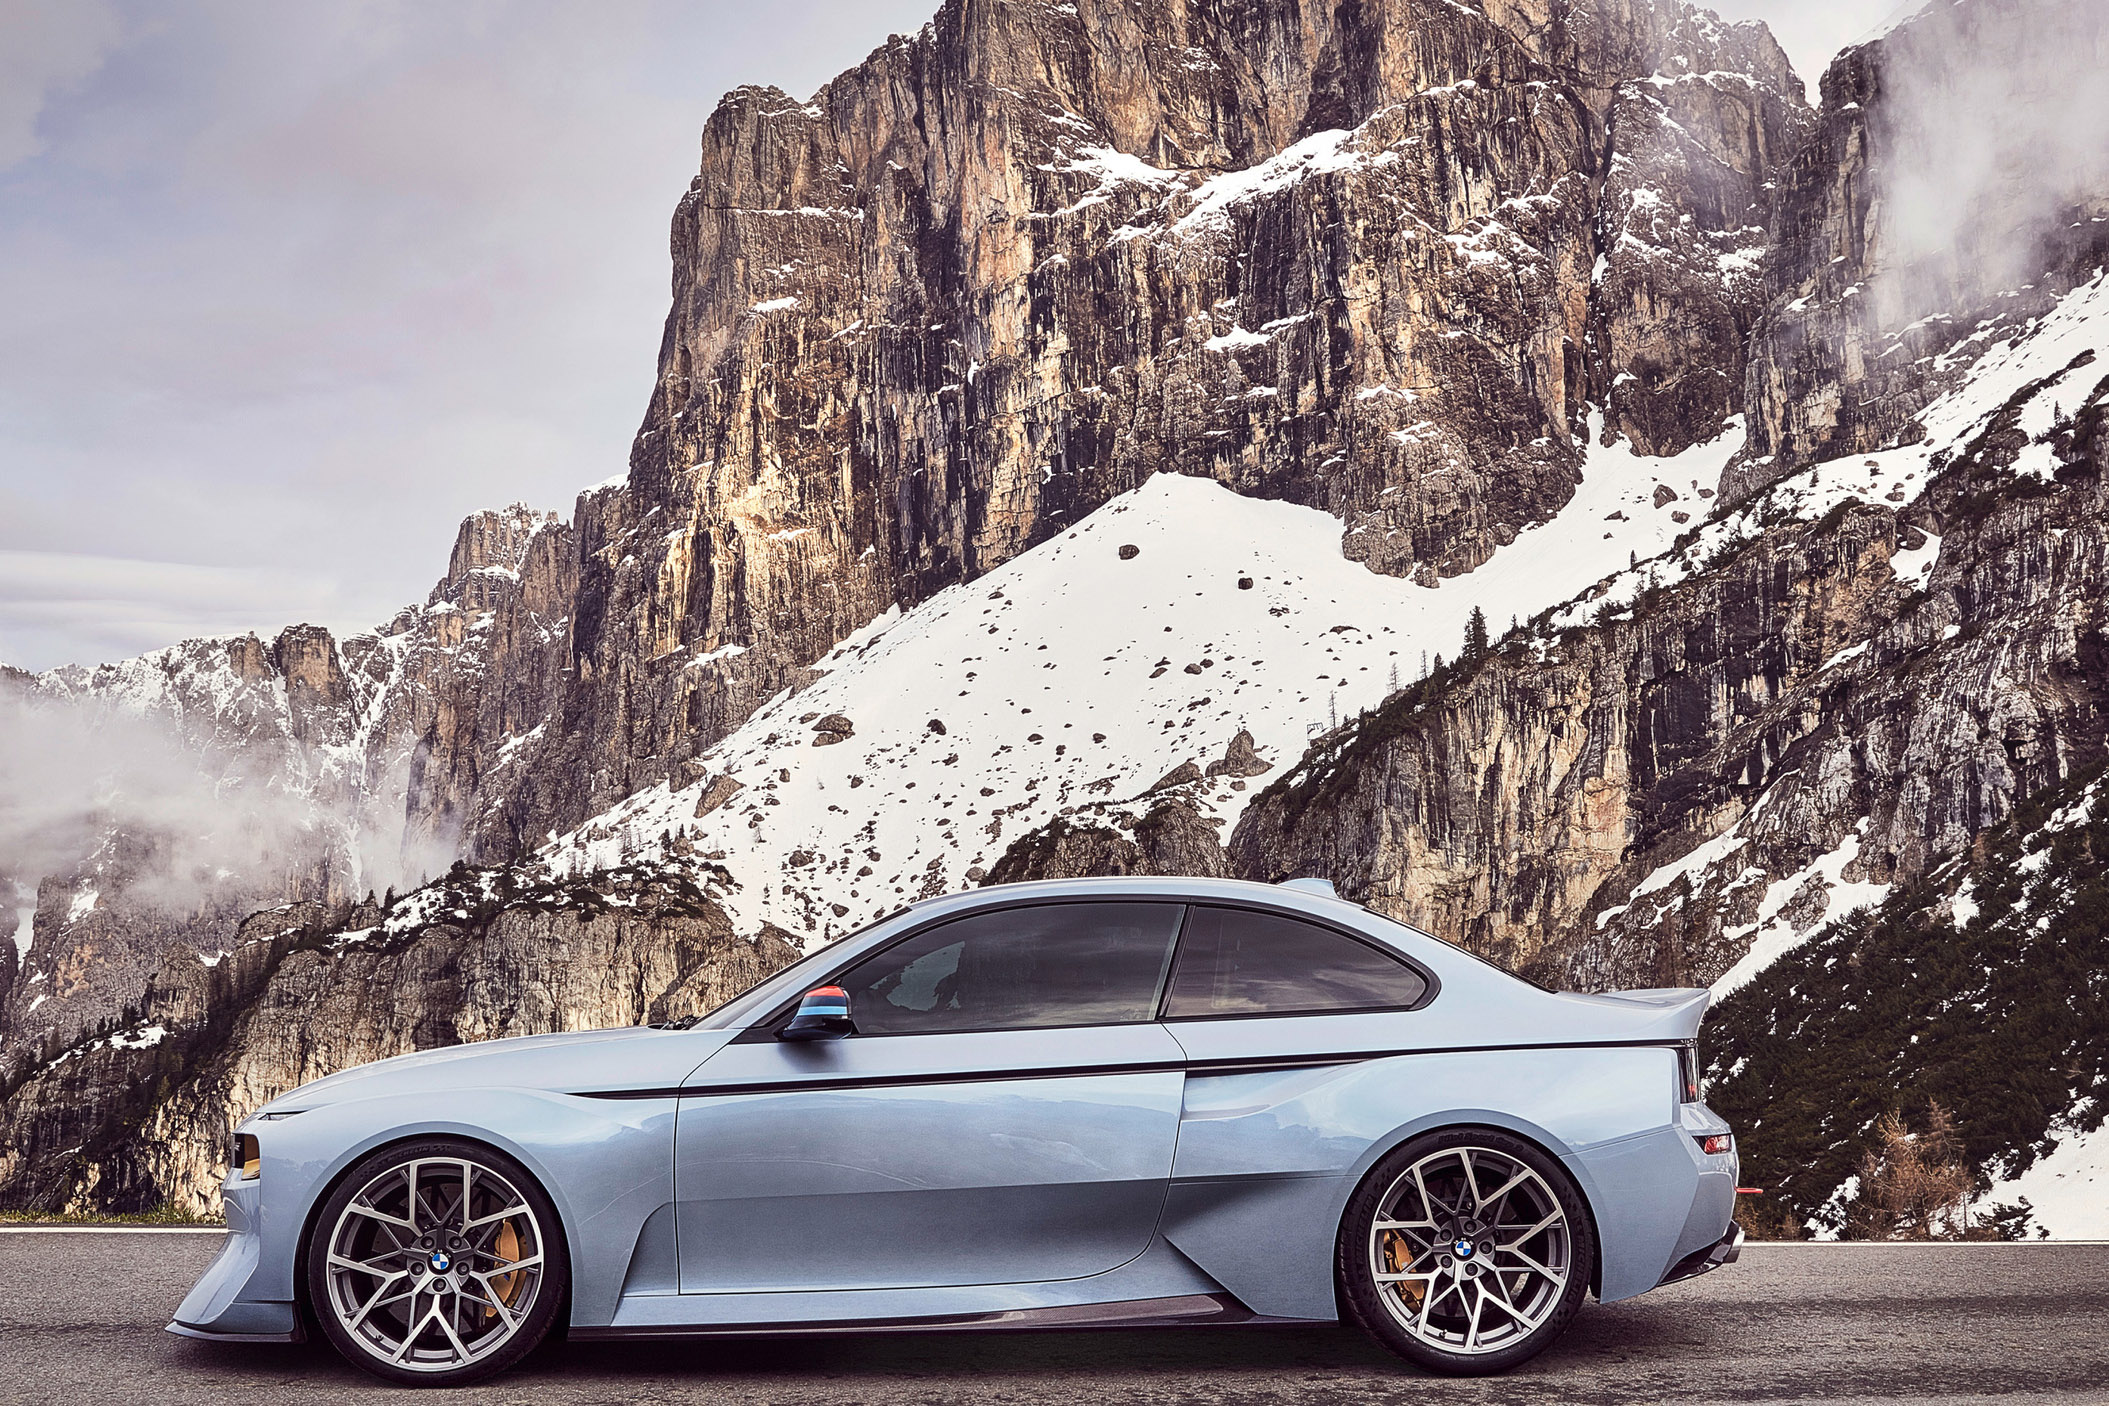 BMW Unveils its Best Retro Concept Yet With the Updated 2002 Hommage